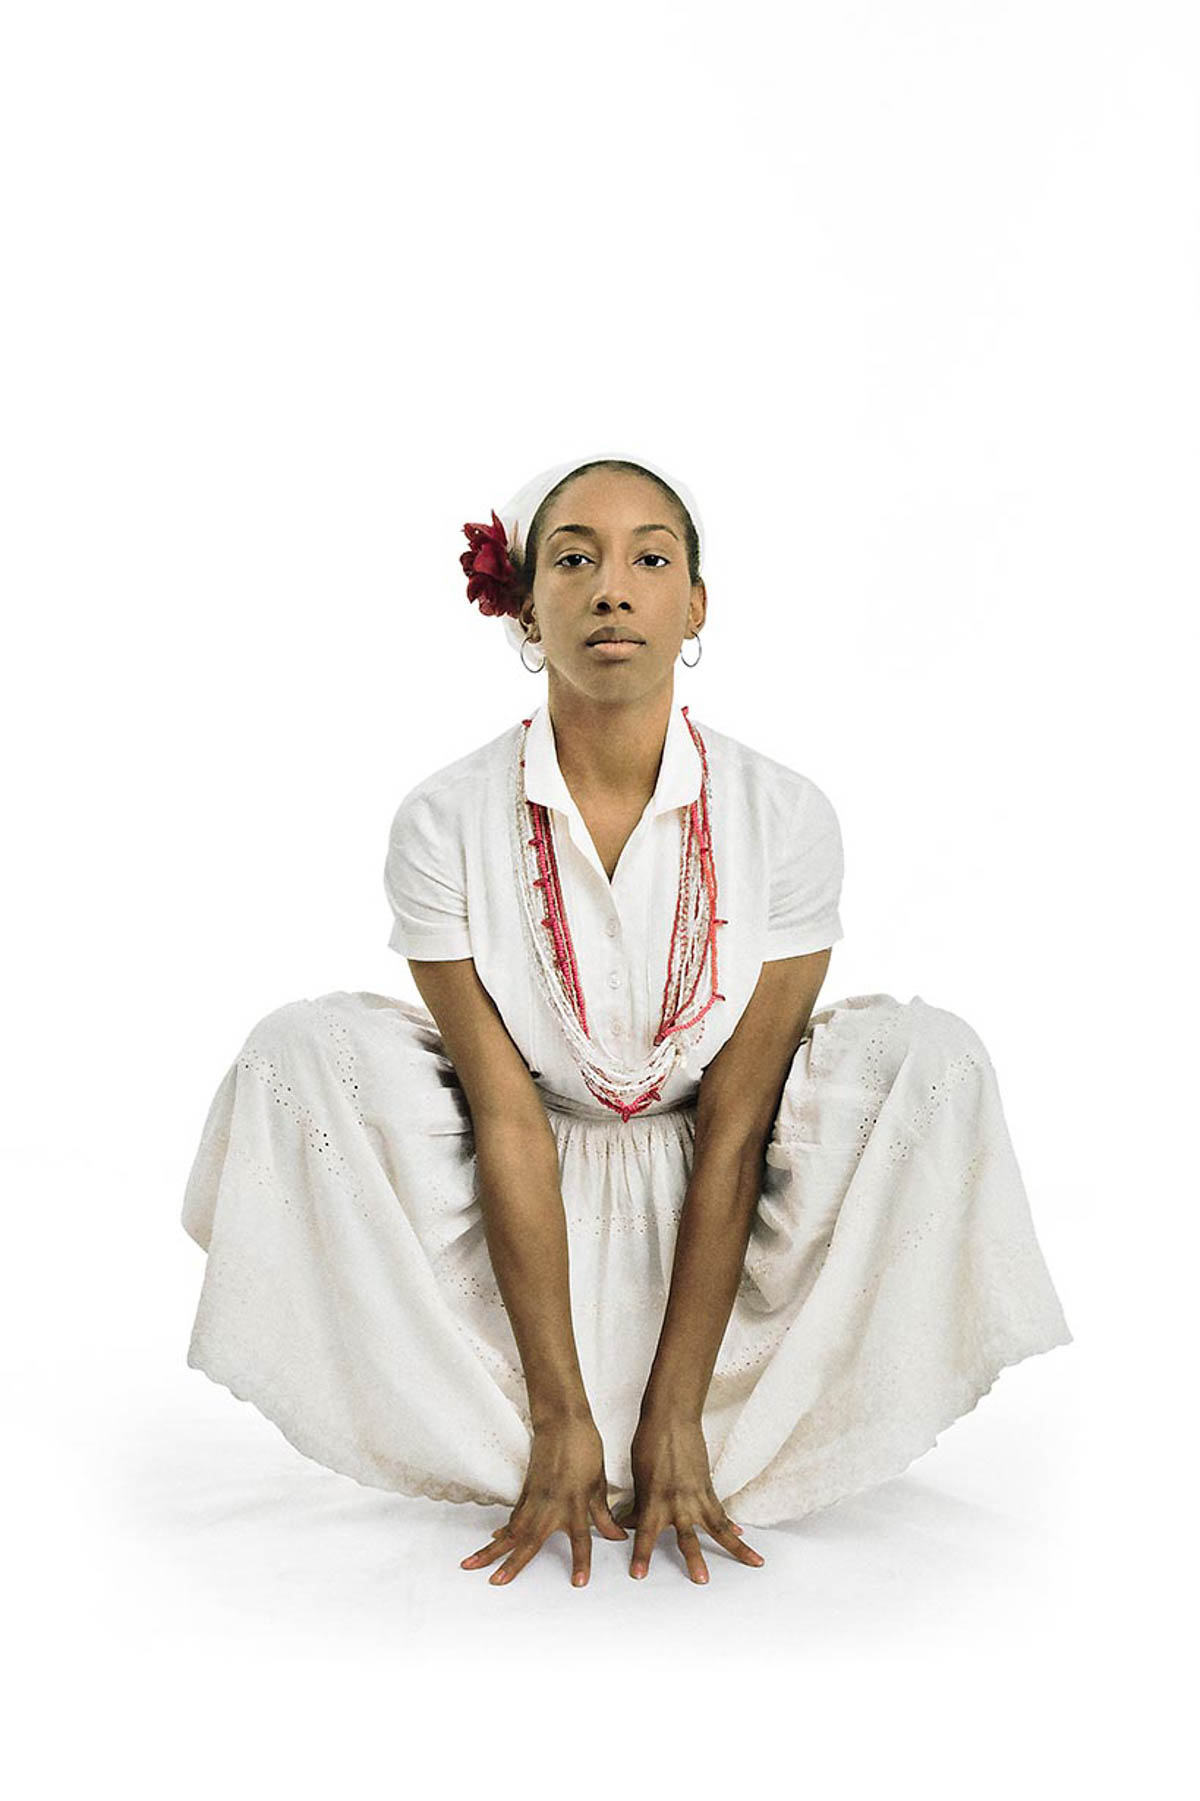 """Ayana Jackson, Leapfrog series:Martha, 2016, courtesy of the artist and Mariane Ibrahim Gallery, Seattle,from """"All Power: Visual Legacies of the Black Panther Party,"""" PCNW 2018"""